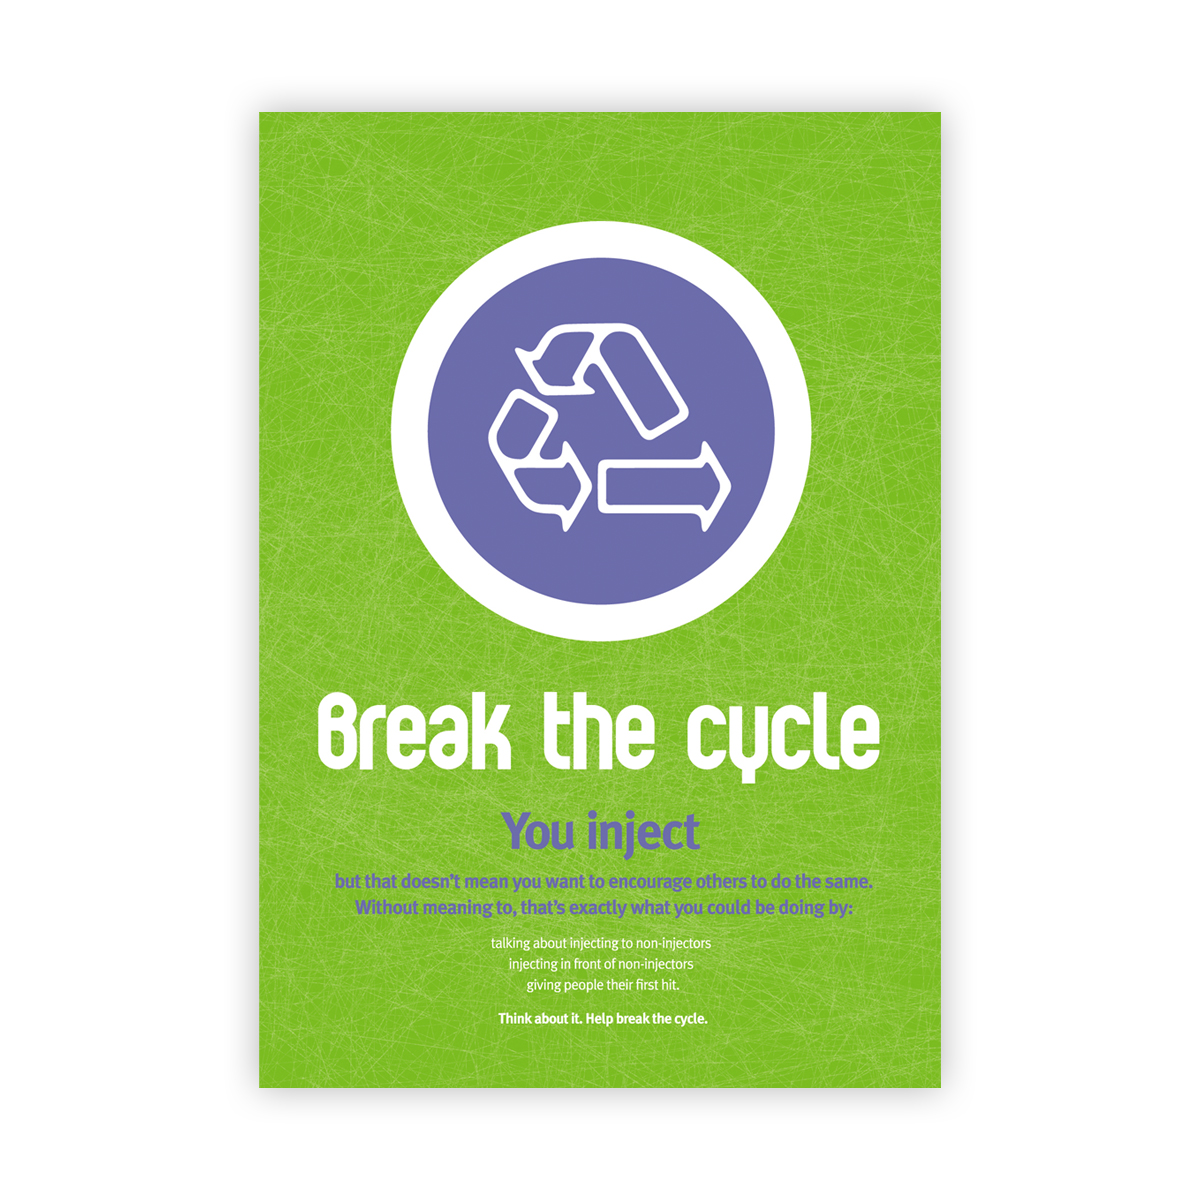 Break the cycle campaign: poster (large)